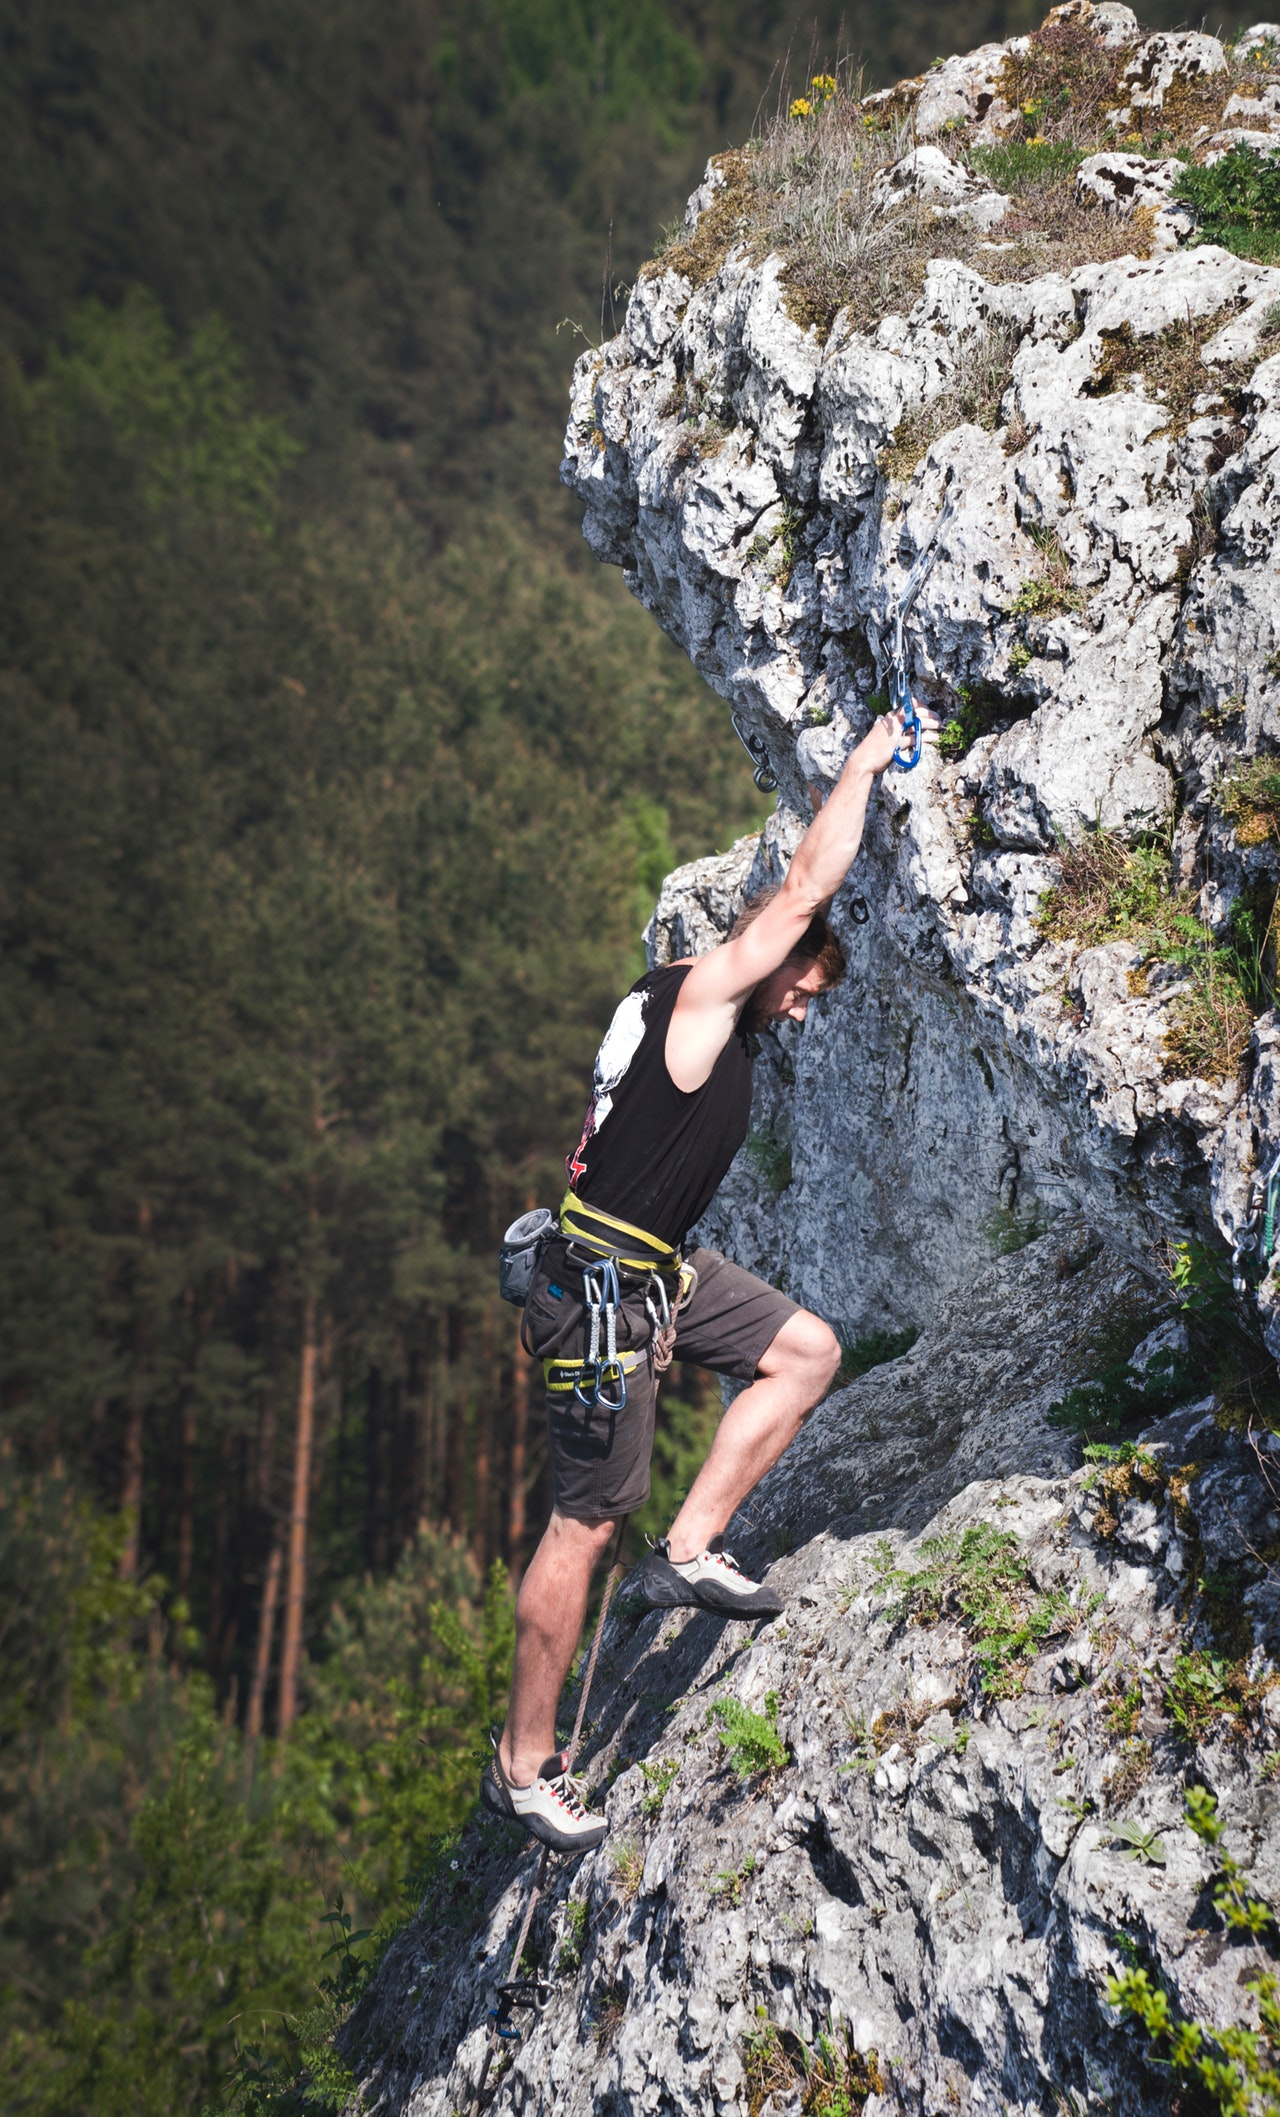 Rock Climbing Essentials Article Image